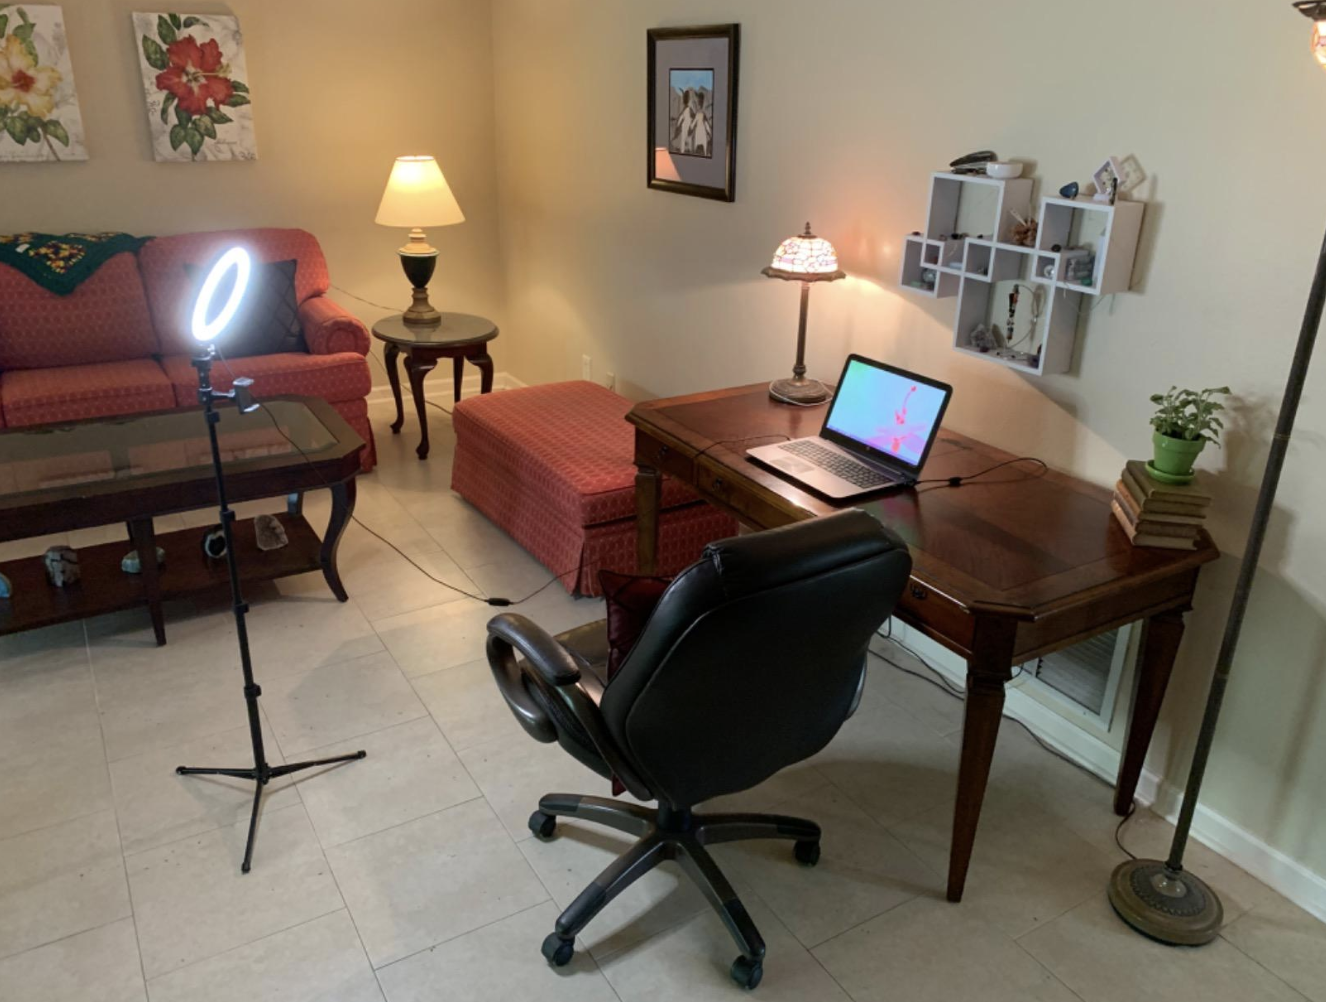 A lit selfie ring on a tripod pointing at a reviewer's desk set up